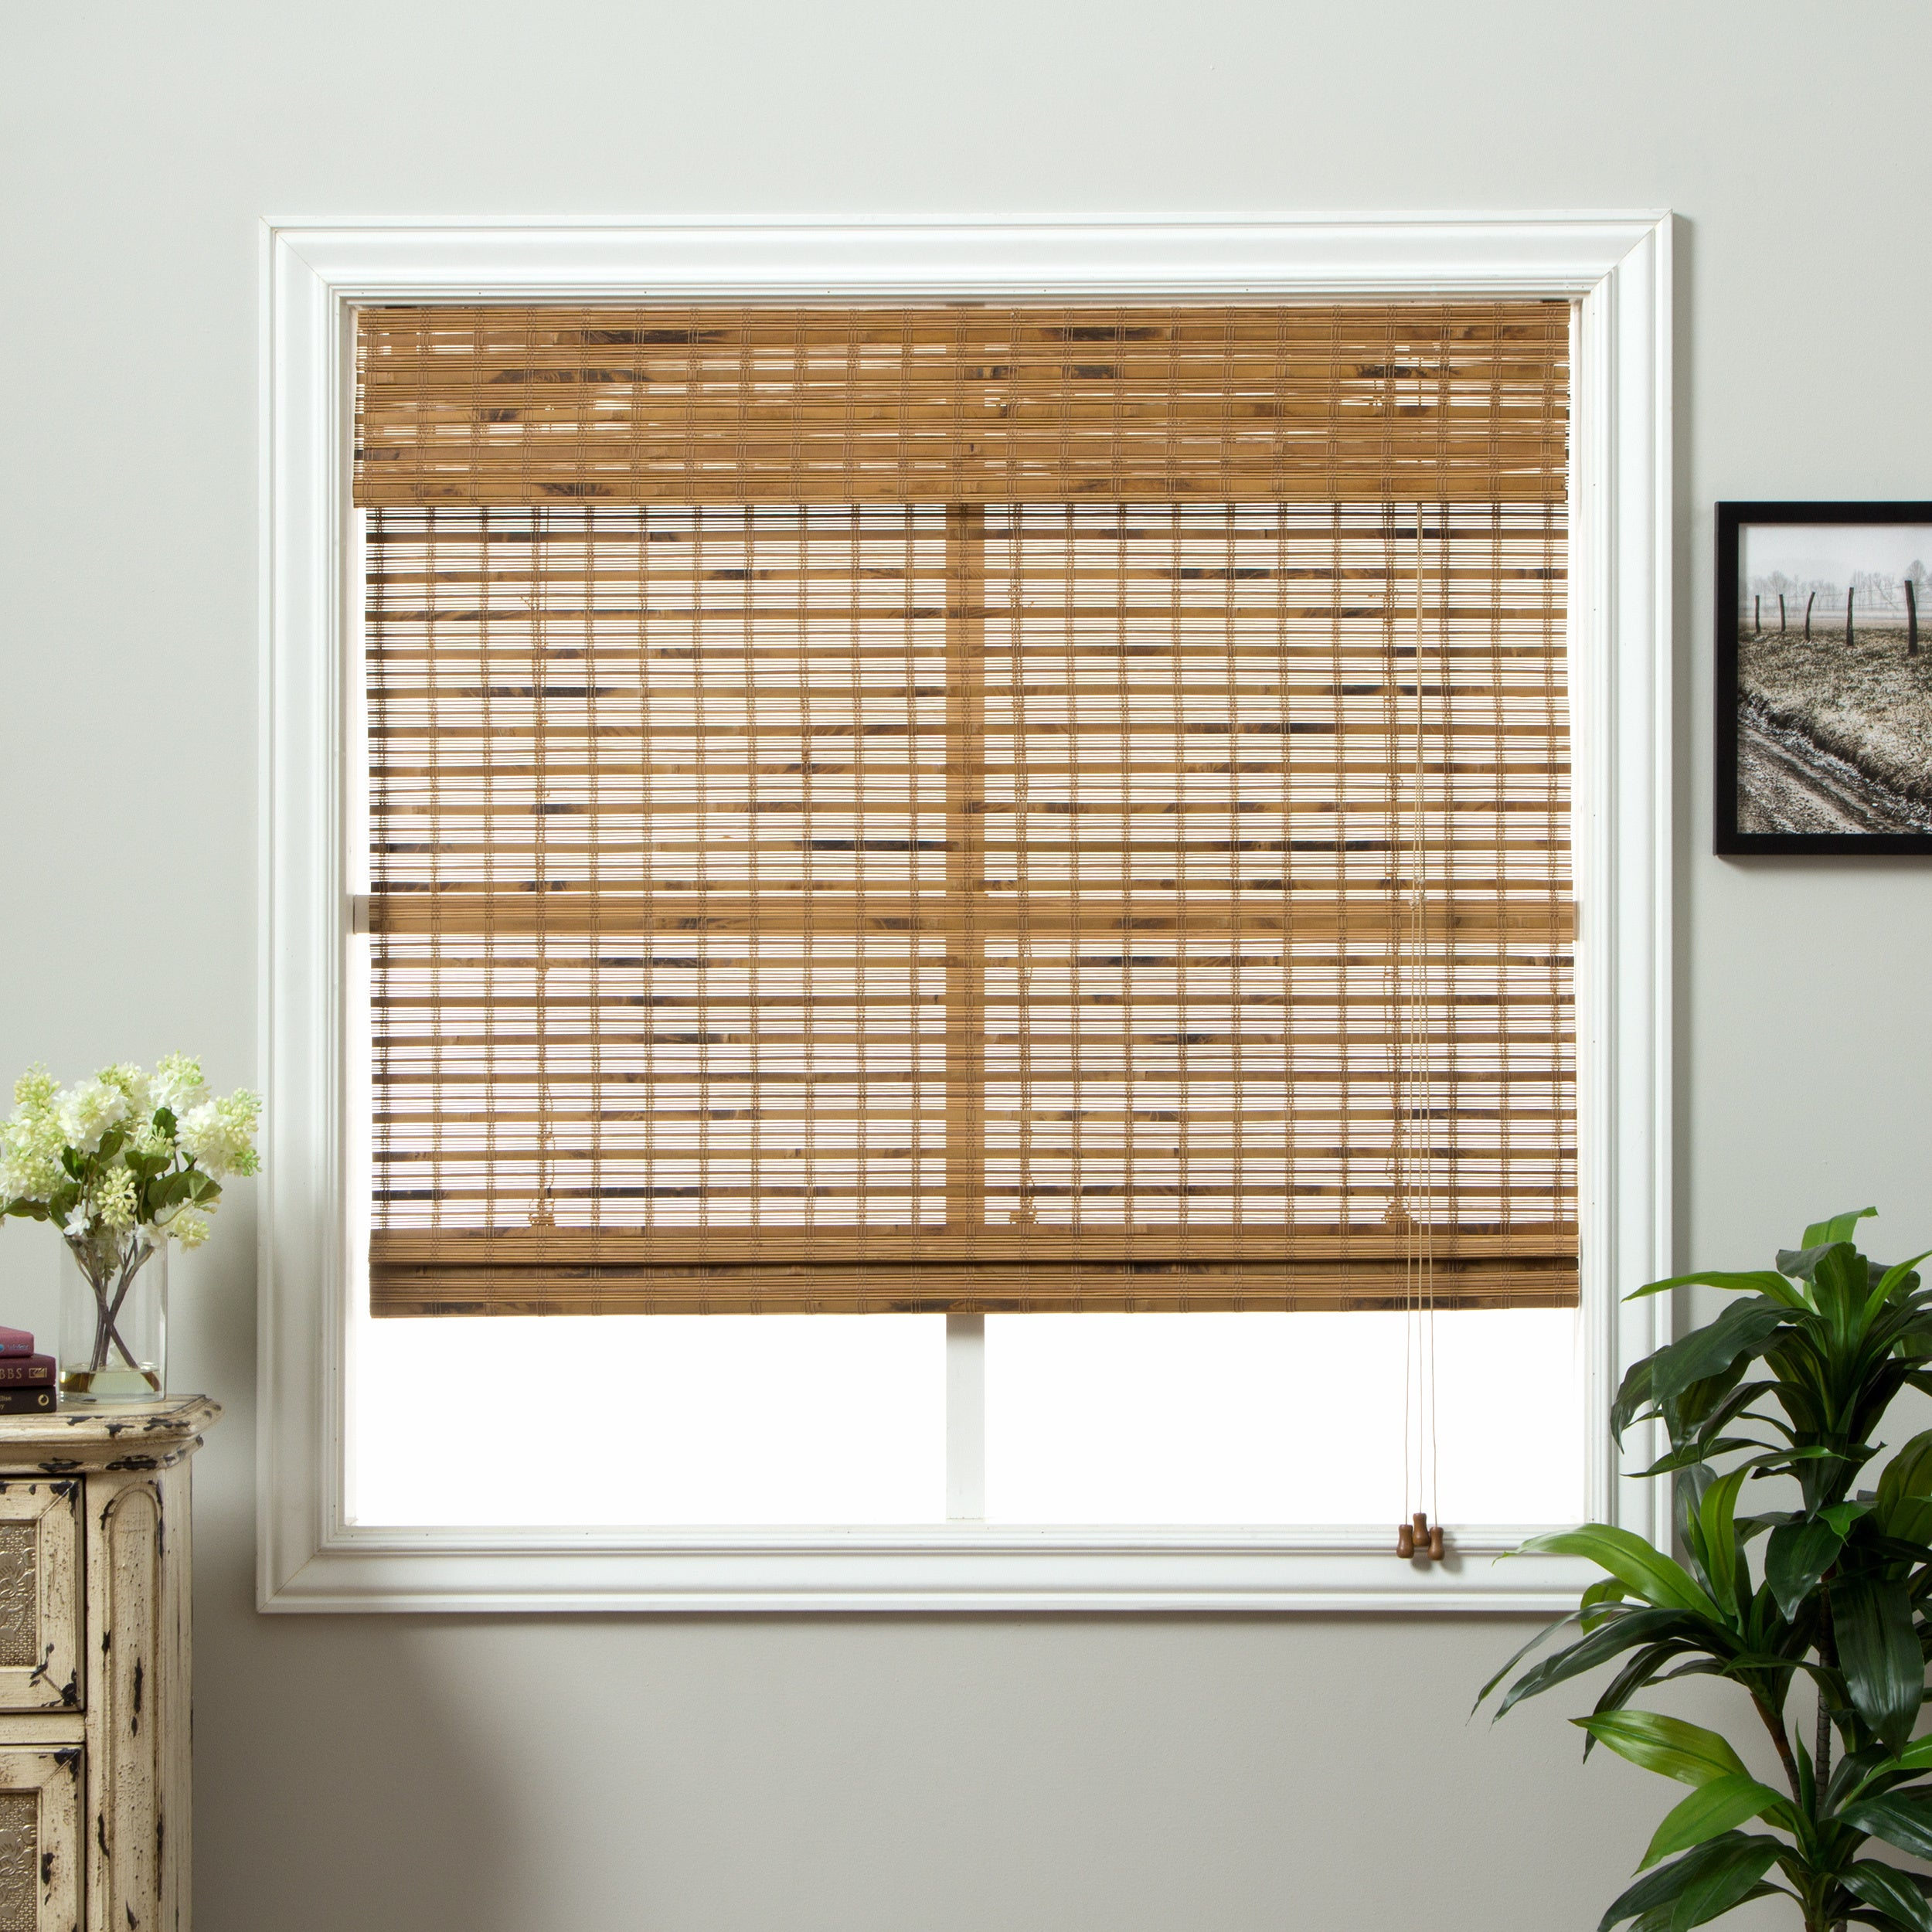 x today free product valan blinds custom inch lengths vertical with home garden shipping overstock hang fabric edinborough inches wide com